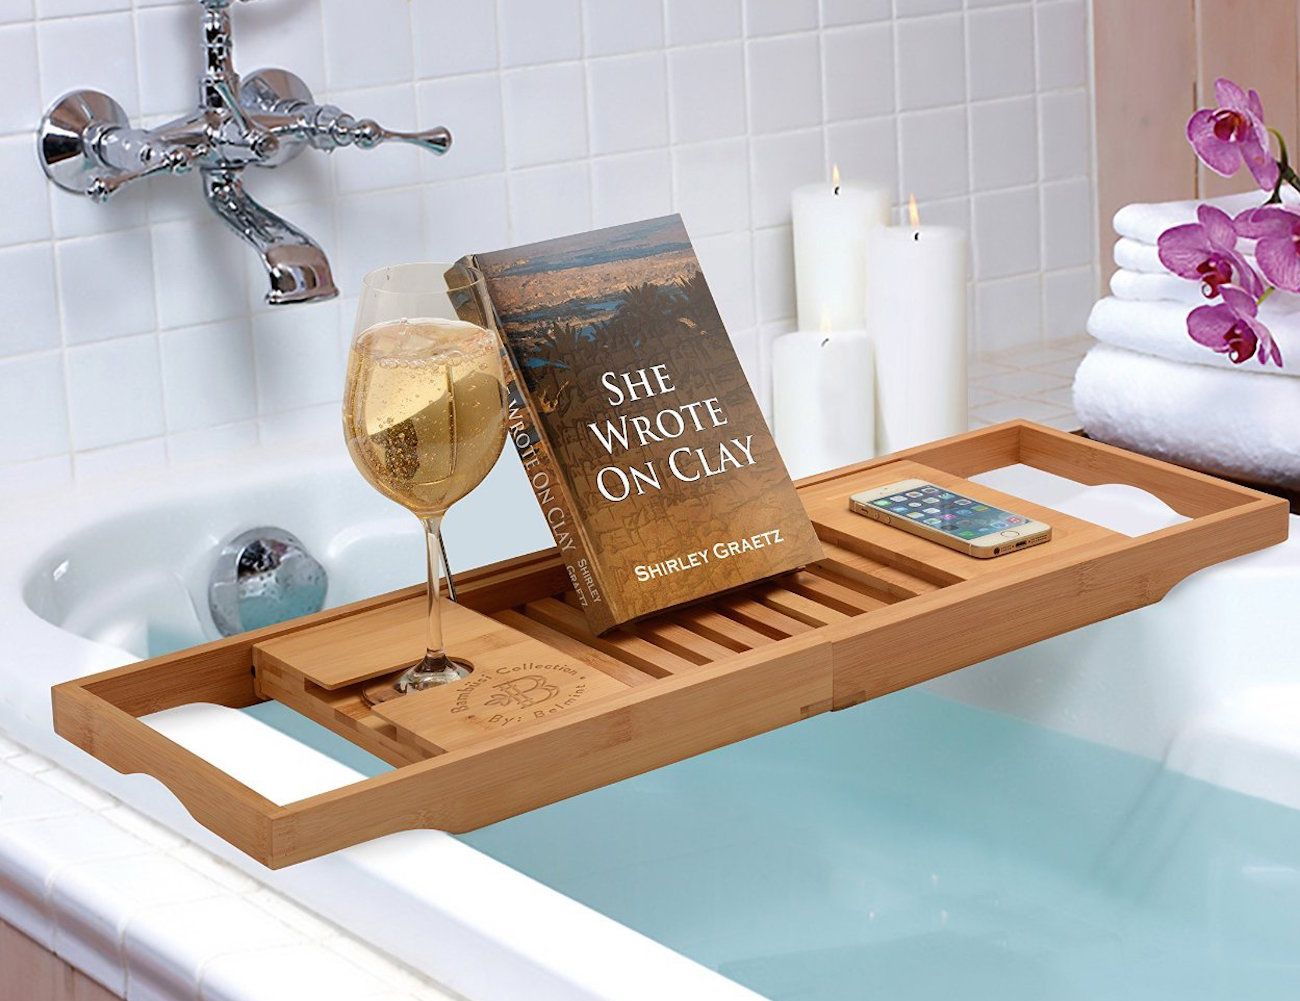 Bamboo Bathtub Caddy From Bambüsi By Belmint | Bubble baths, Bathtub ...